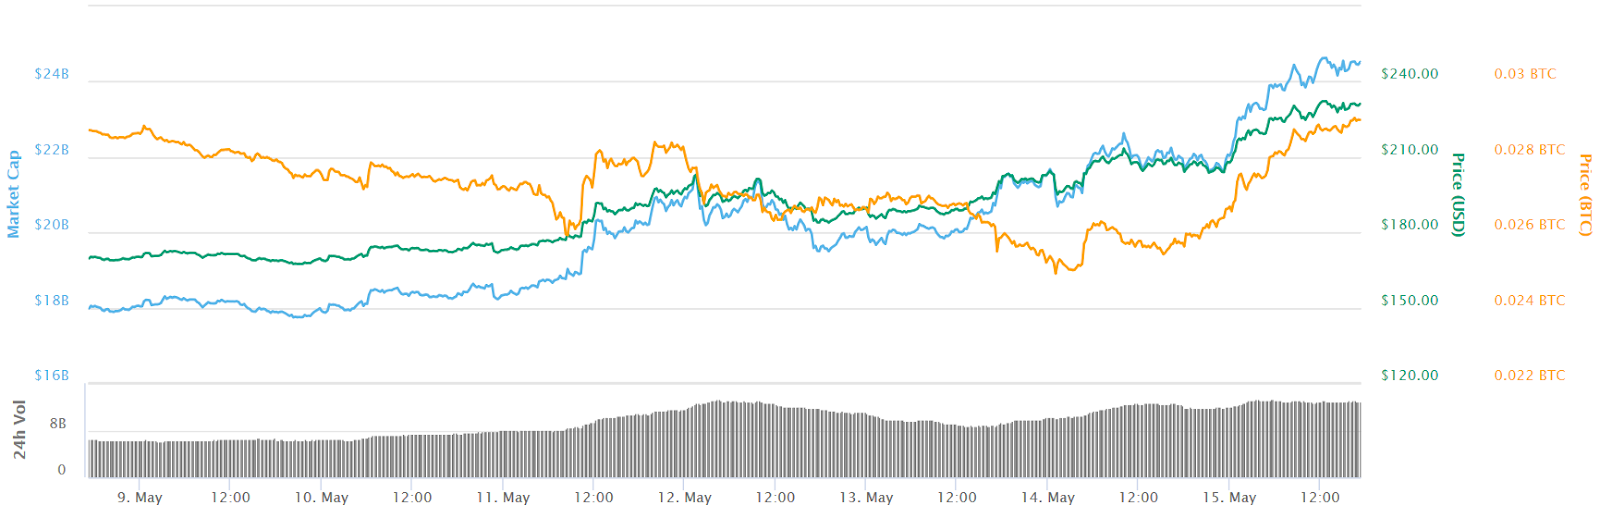 Ether 7-day price chart. Source: CoinMarketCap